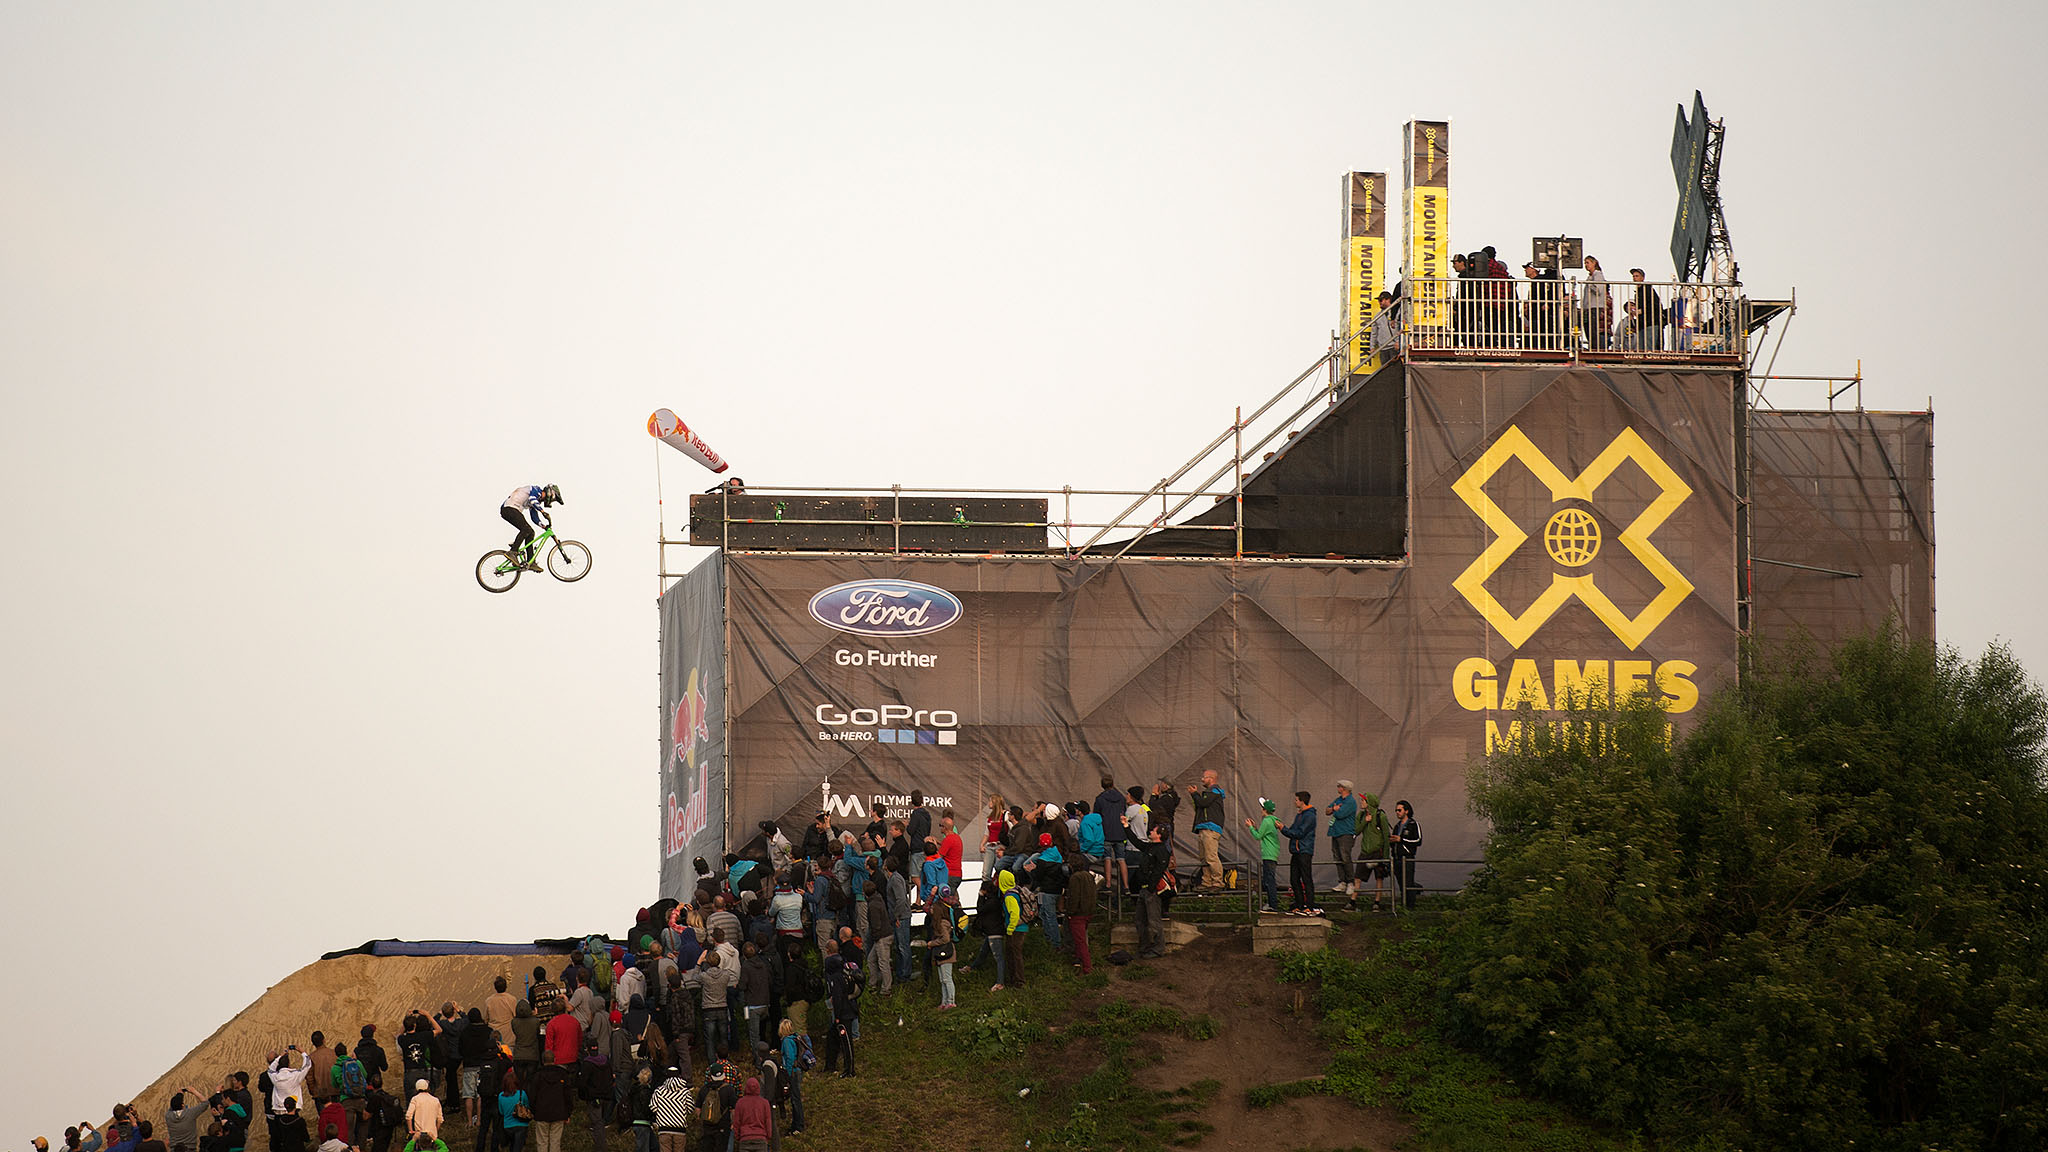 X Games has landed in Munich for the final overseas stop of 2013. Fourteen medal competitions -- including Mountain Bike Slopestyle, which made its X Games debut -- stretched over four days at the Olympiapark, which opened in 1972 for the Summer Olympics.